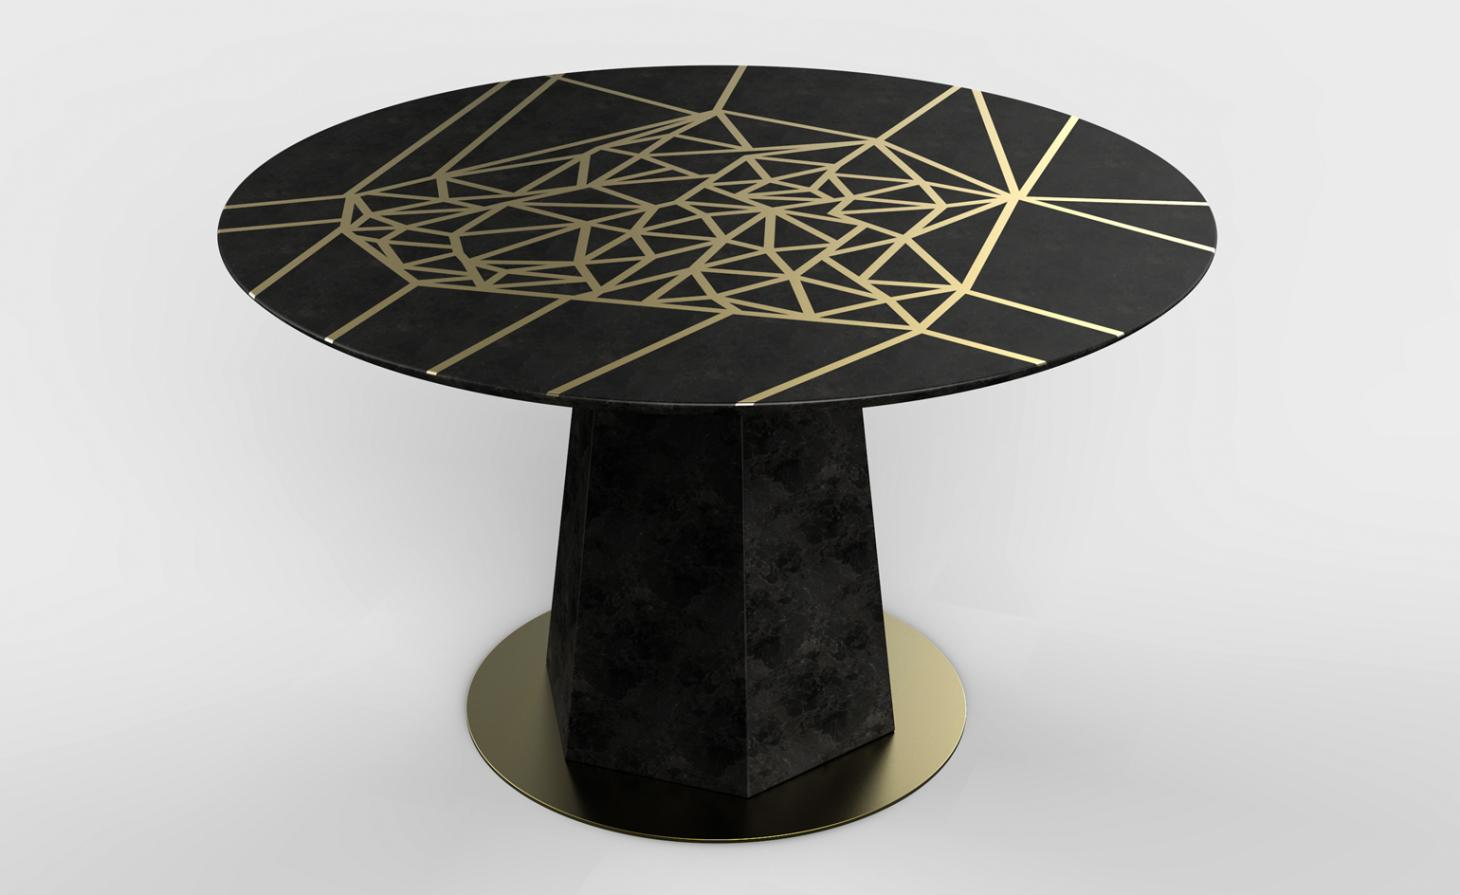 Fractal furniture: Holly Hunt collaborates with artist Paula Crown